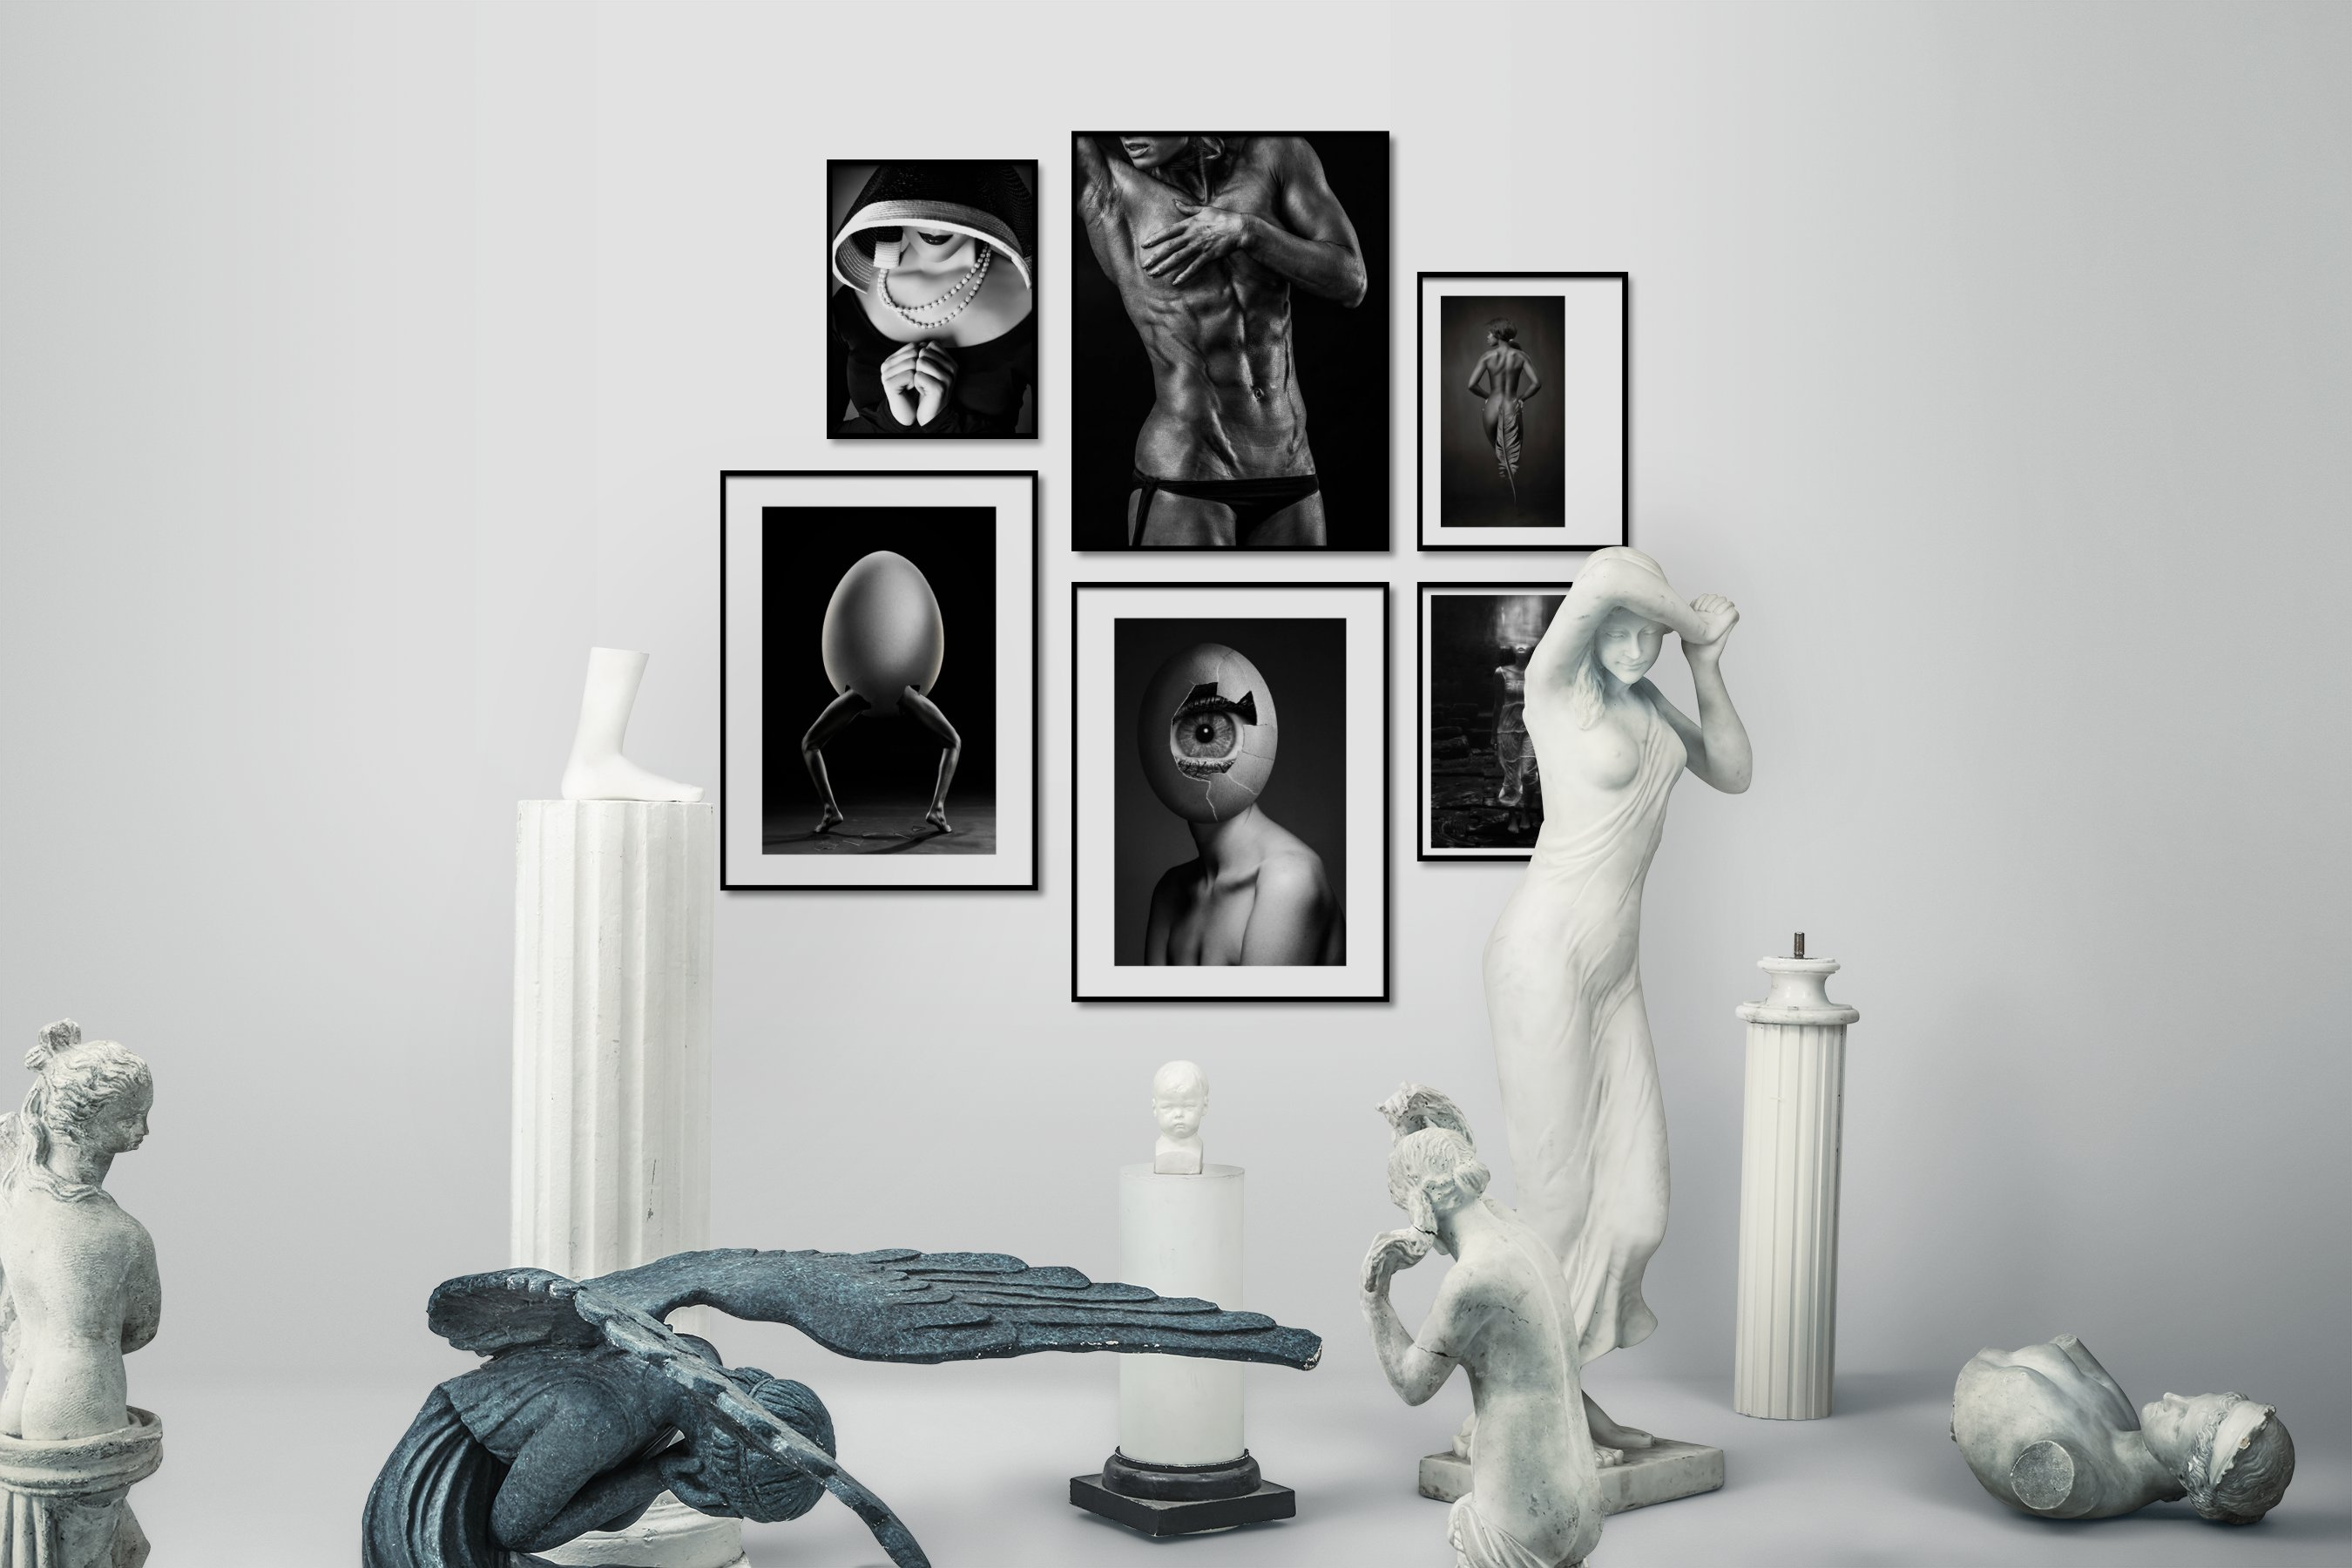 Gallery wall idea with six framed pictures arranged on a wall depicting Fashion & Beauty, Black & White, Dark Tones, Artsy, and For the Minimalist